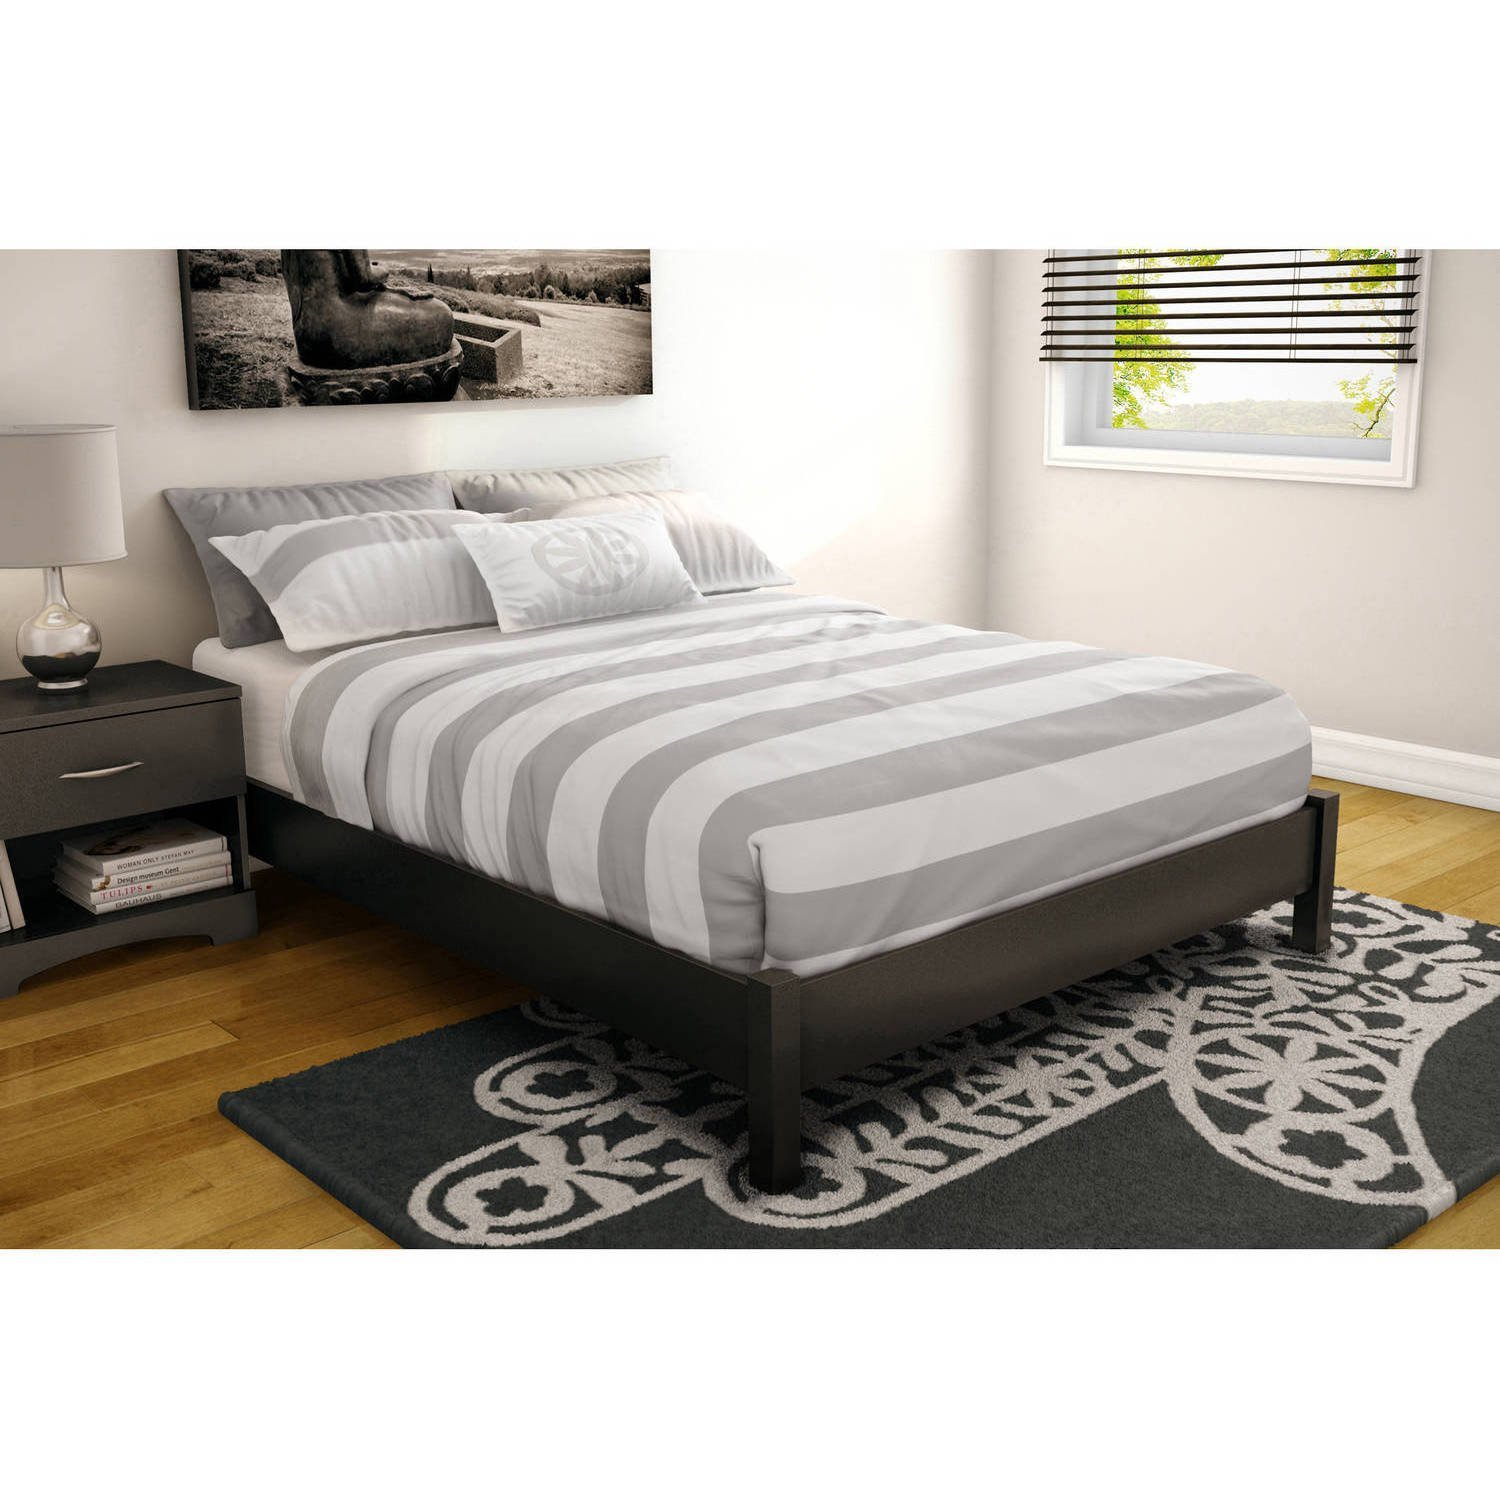 Best South Shore Smart Basics Bedroom In A Box Multiple With Pictures